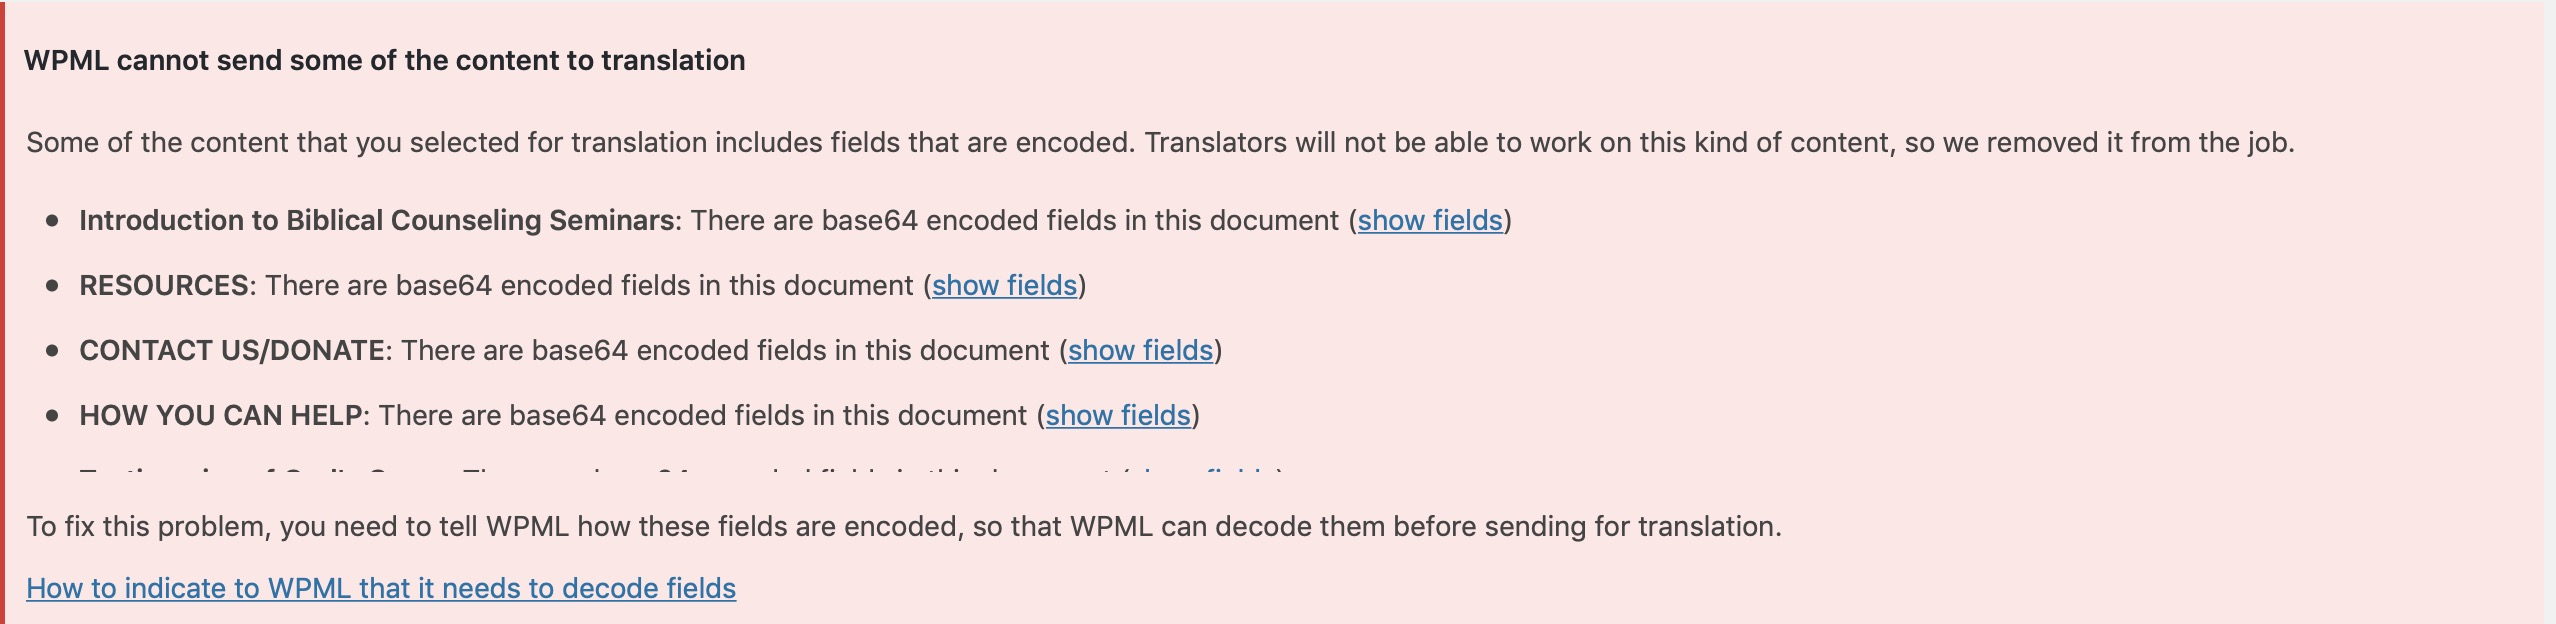 WPML Can't send content to translation.jpg